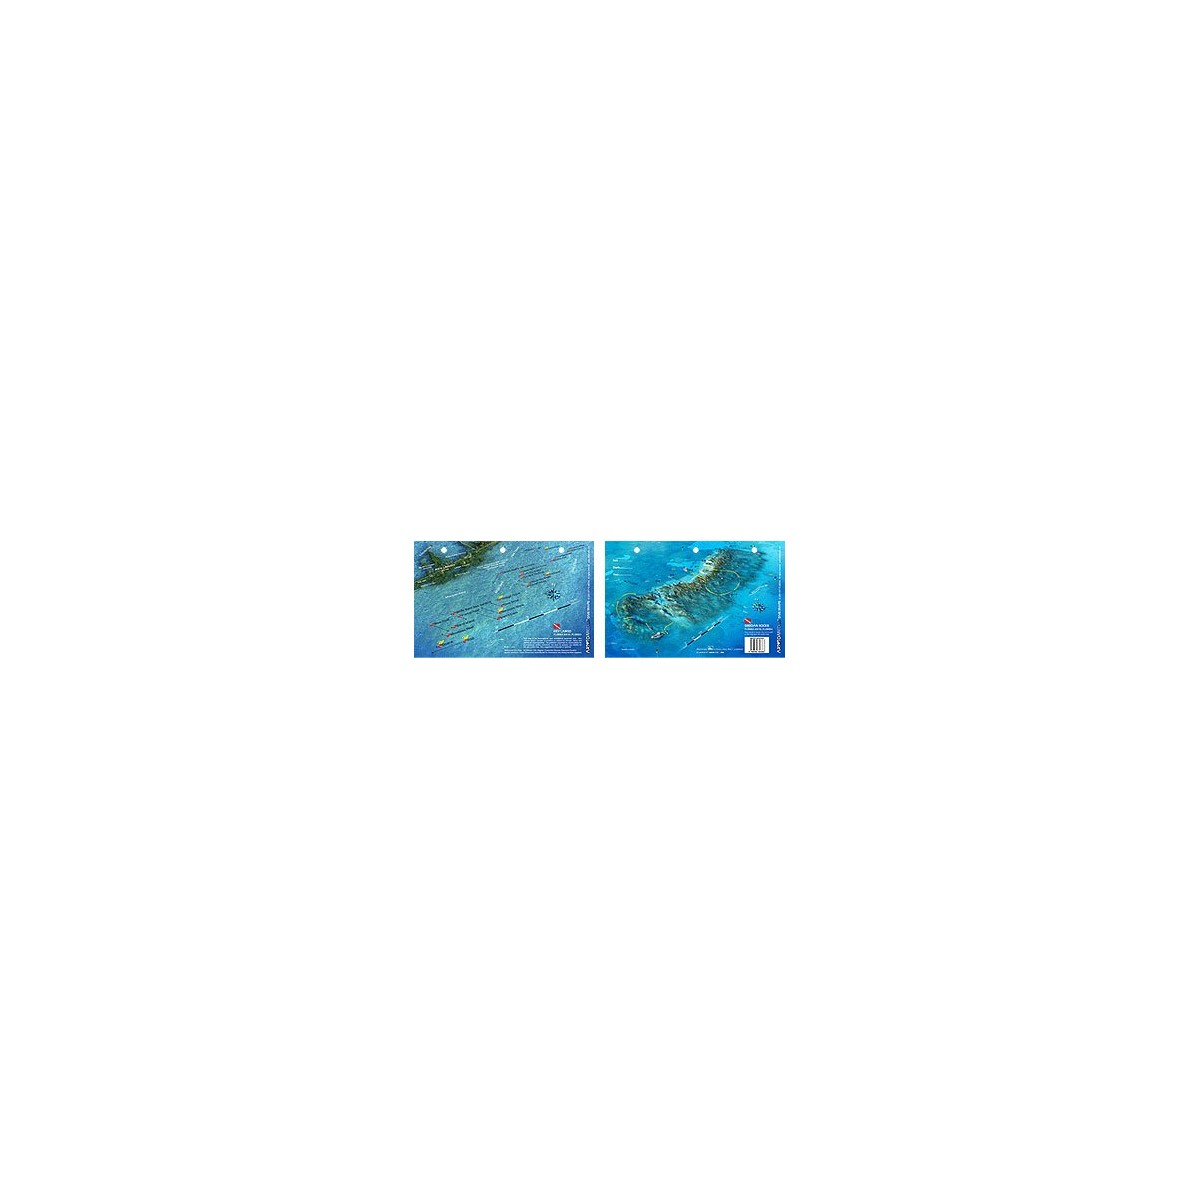 Grecian Rocks in Key Largo, Florida (8.5 x 5.5 Inches) (21.6 x 15cm) - New Art to Media Underwater Waterproof 3D Dive Site Map